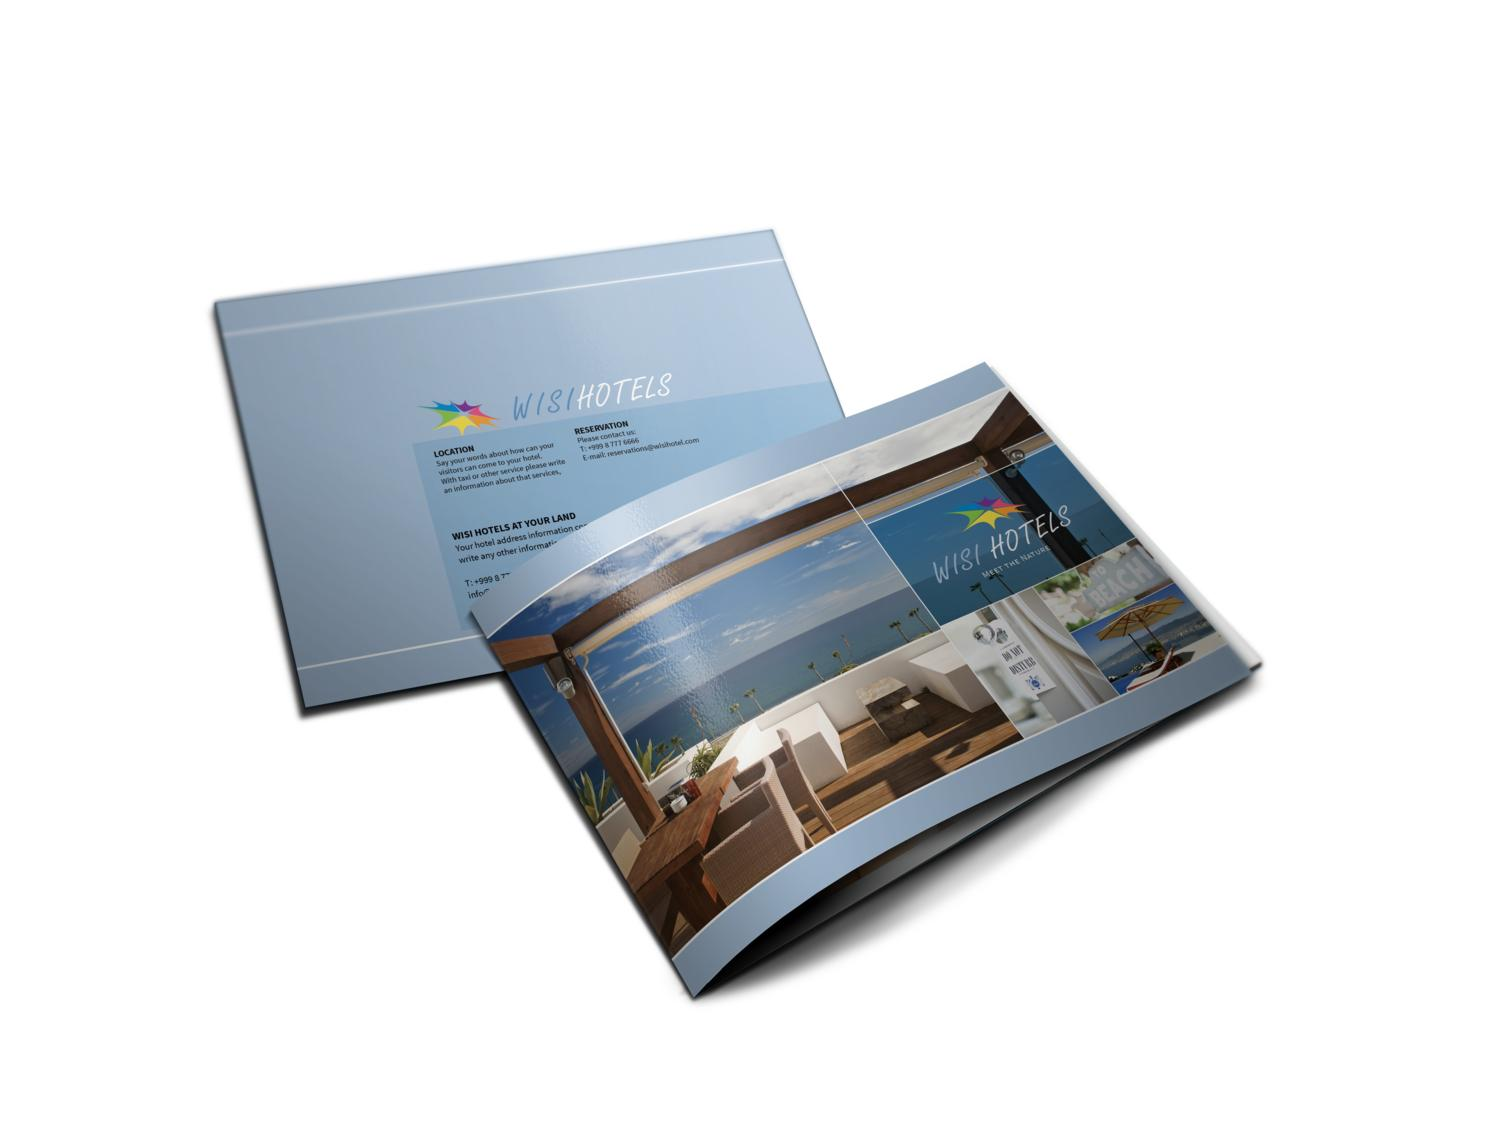 Premium A5 Brochure Design - 8 Pages by balkay - 12463